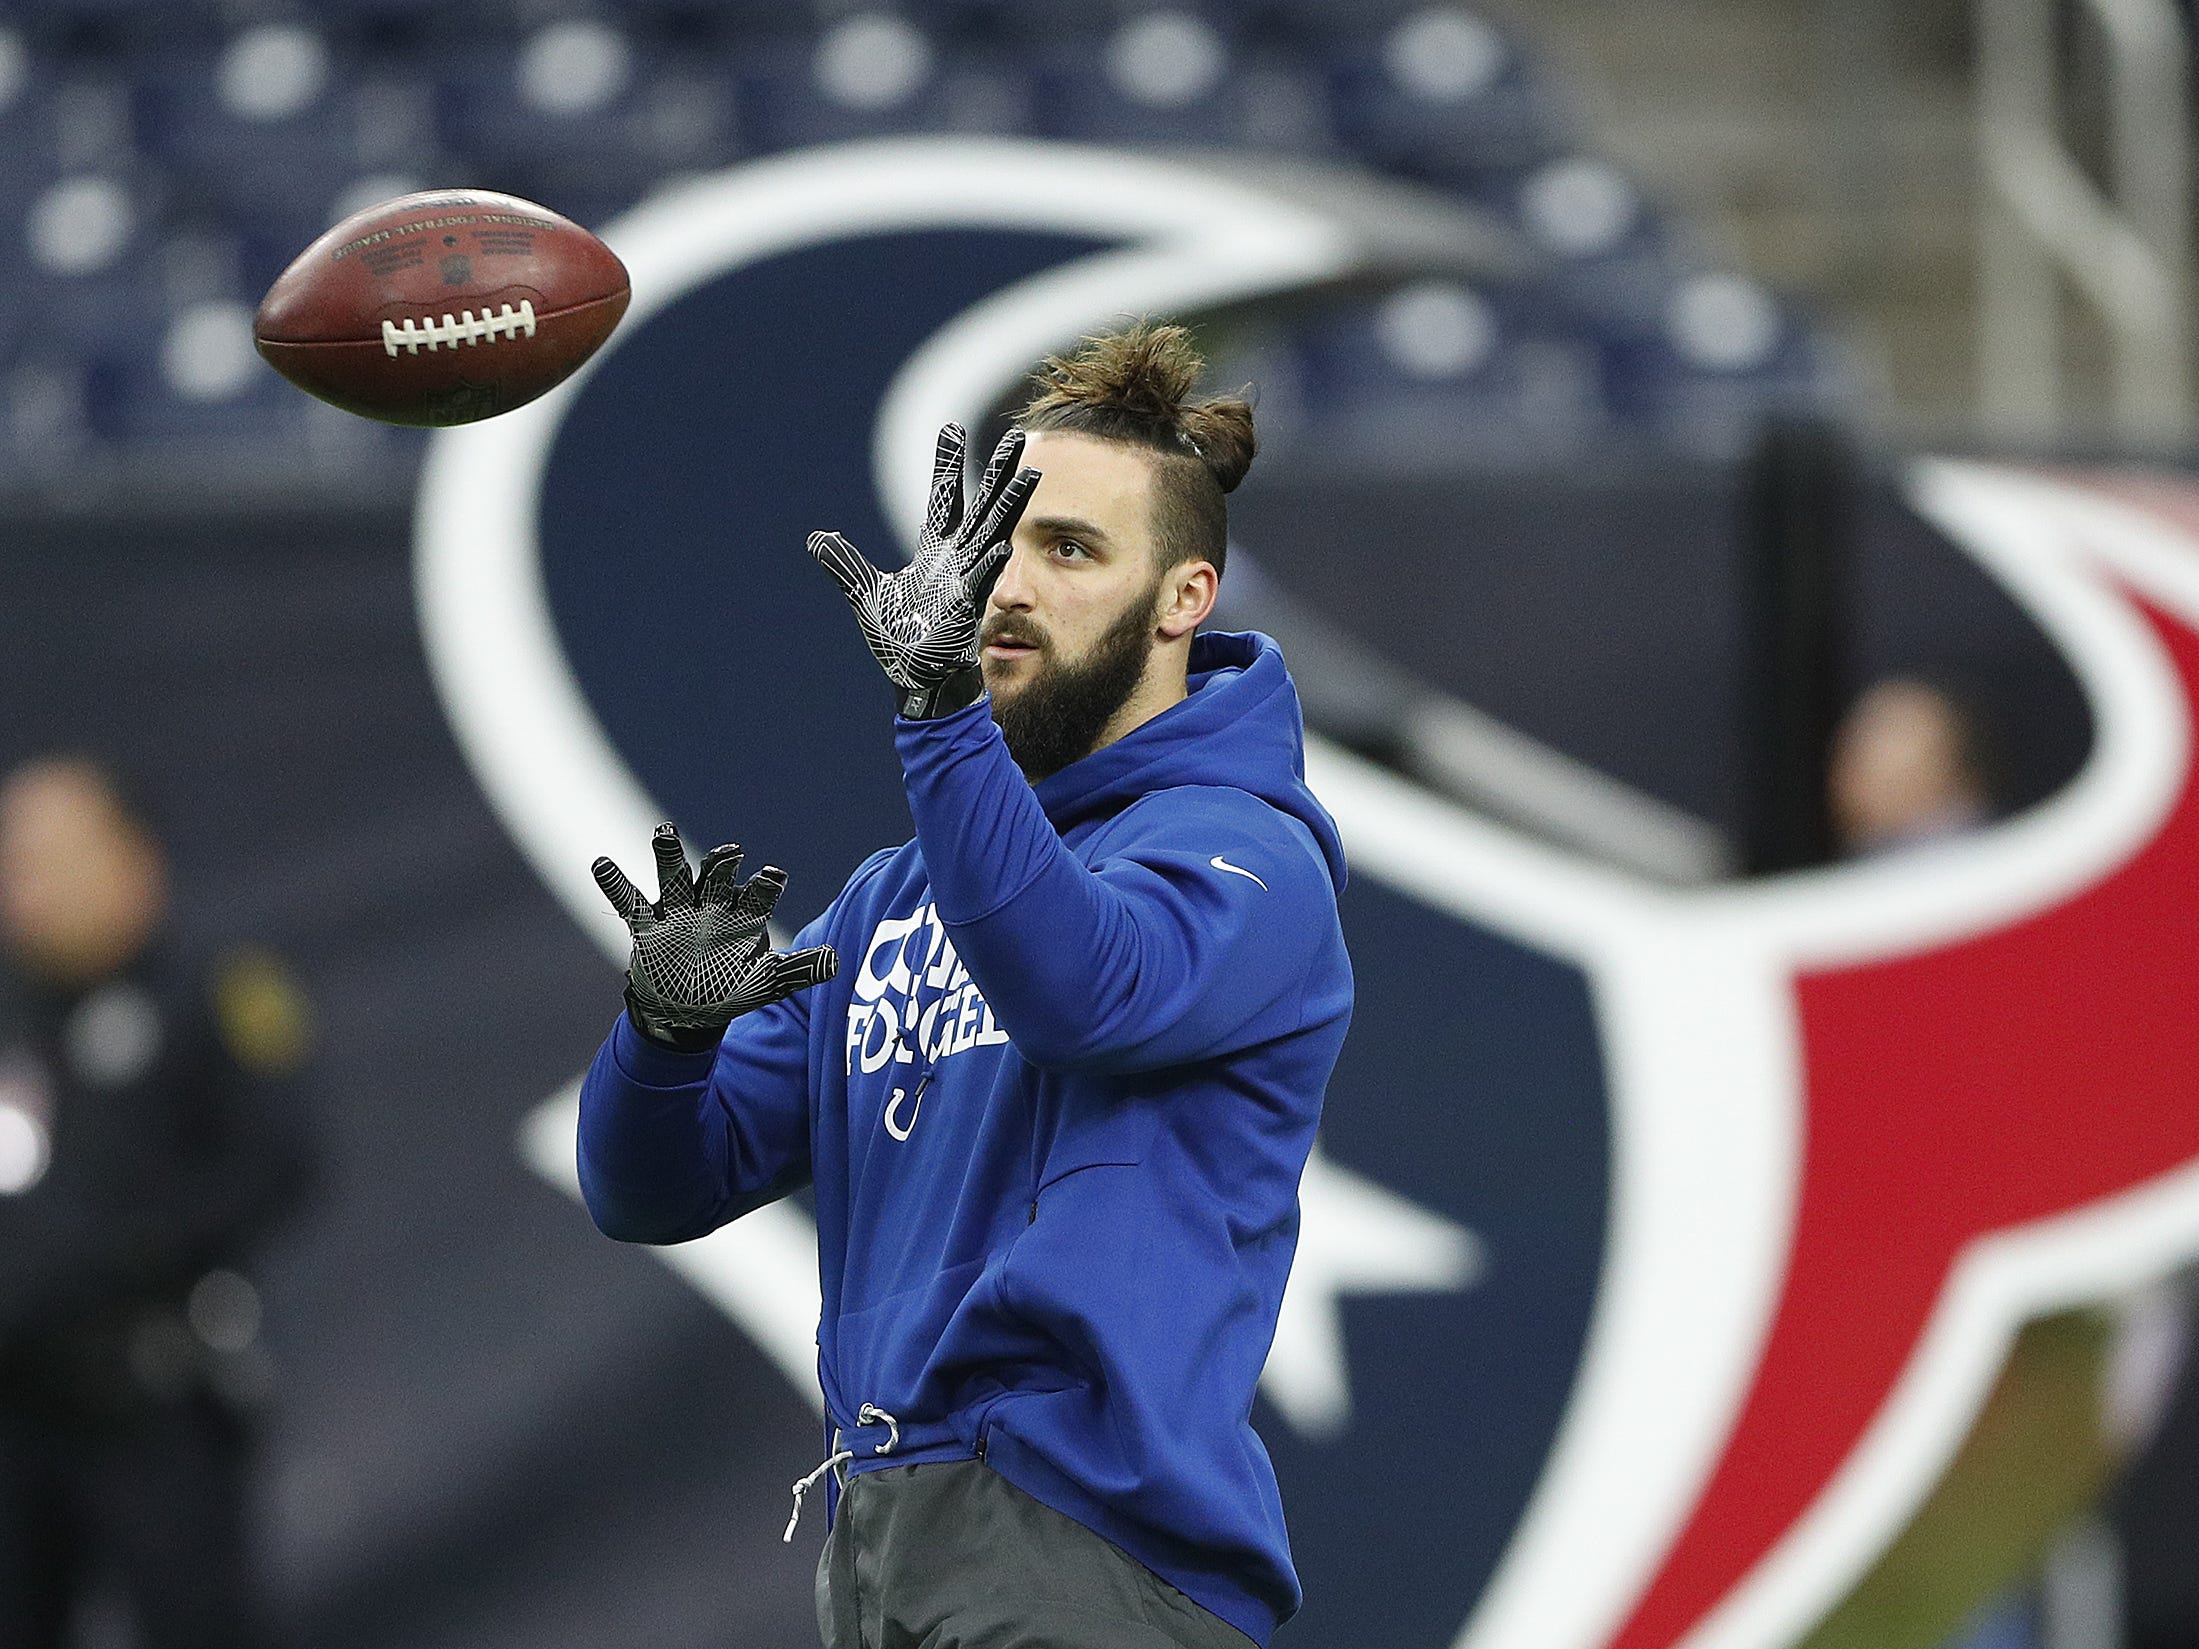 Indianapolis Colts long snapper Luke Rhodes (46) before the start of their game against the Houston Texans at NRG Stadium in Houston, TX., on Sunday, Dec. 9, 2018.